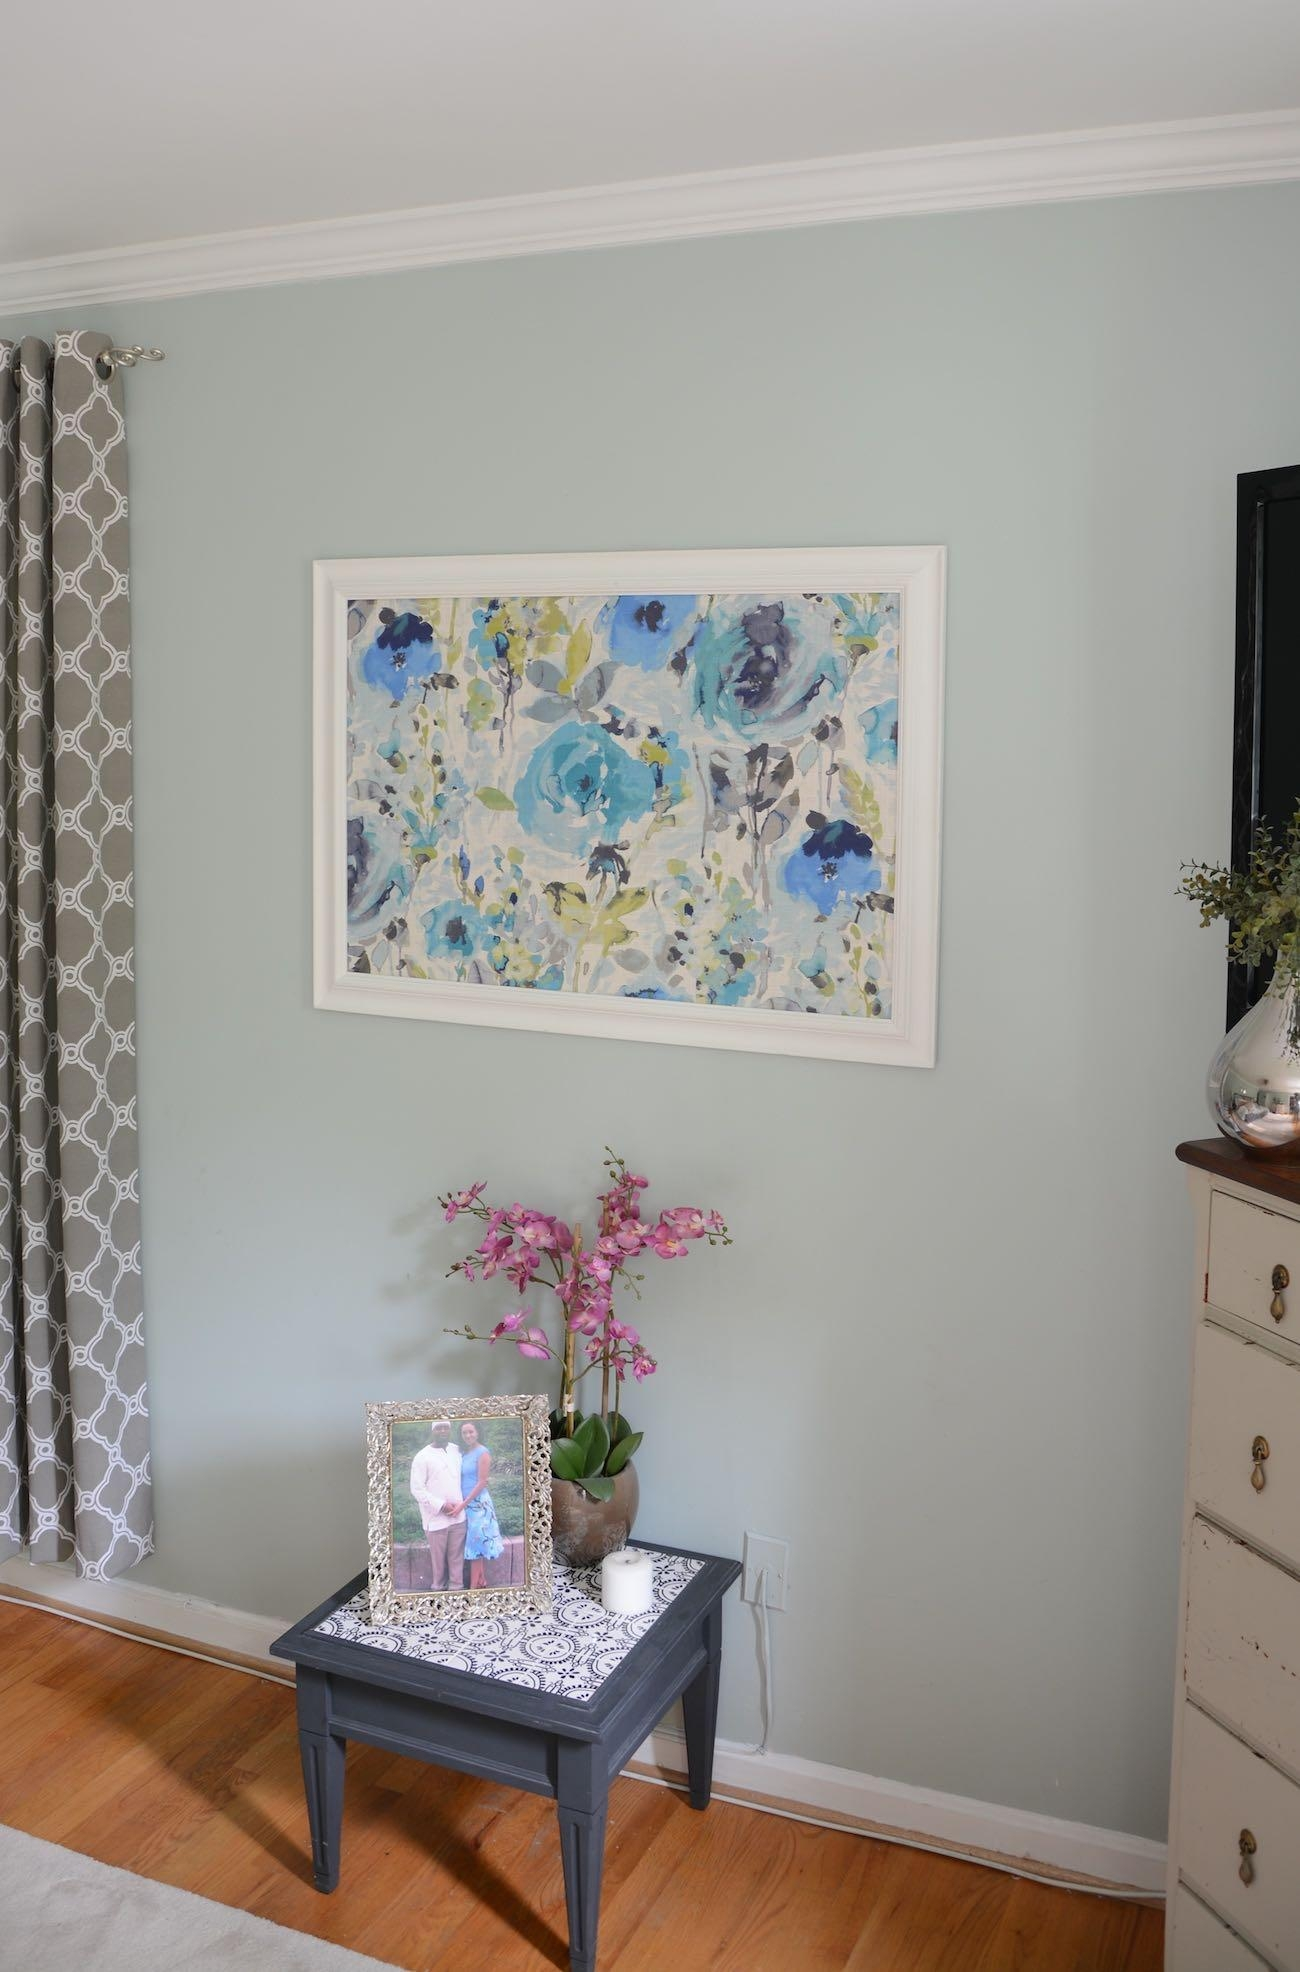 How To Frame Fabric For Wall Art With A Picture Frame Regarding Framed Fabric Wall Art (Image 15 of 20)